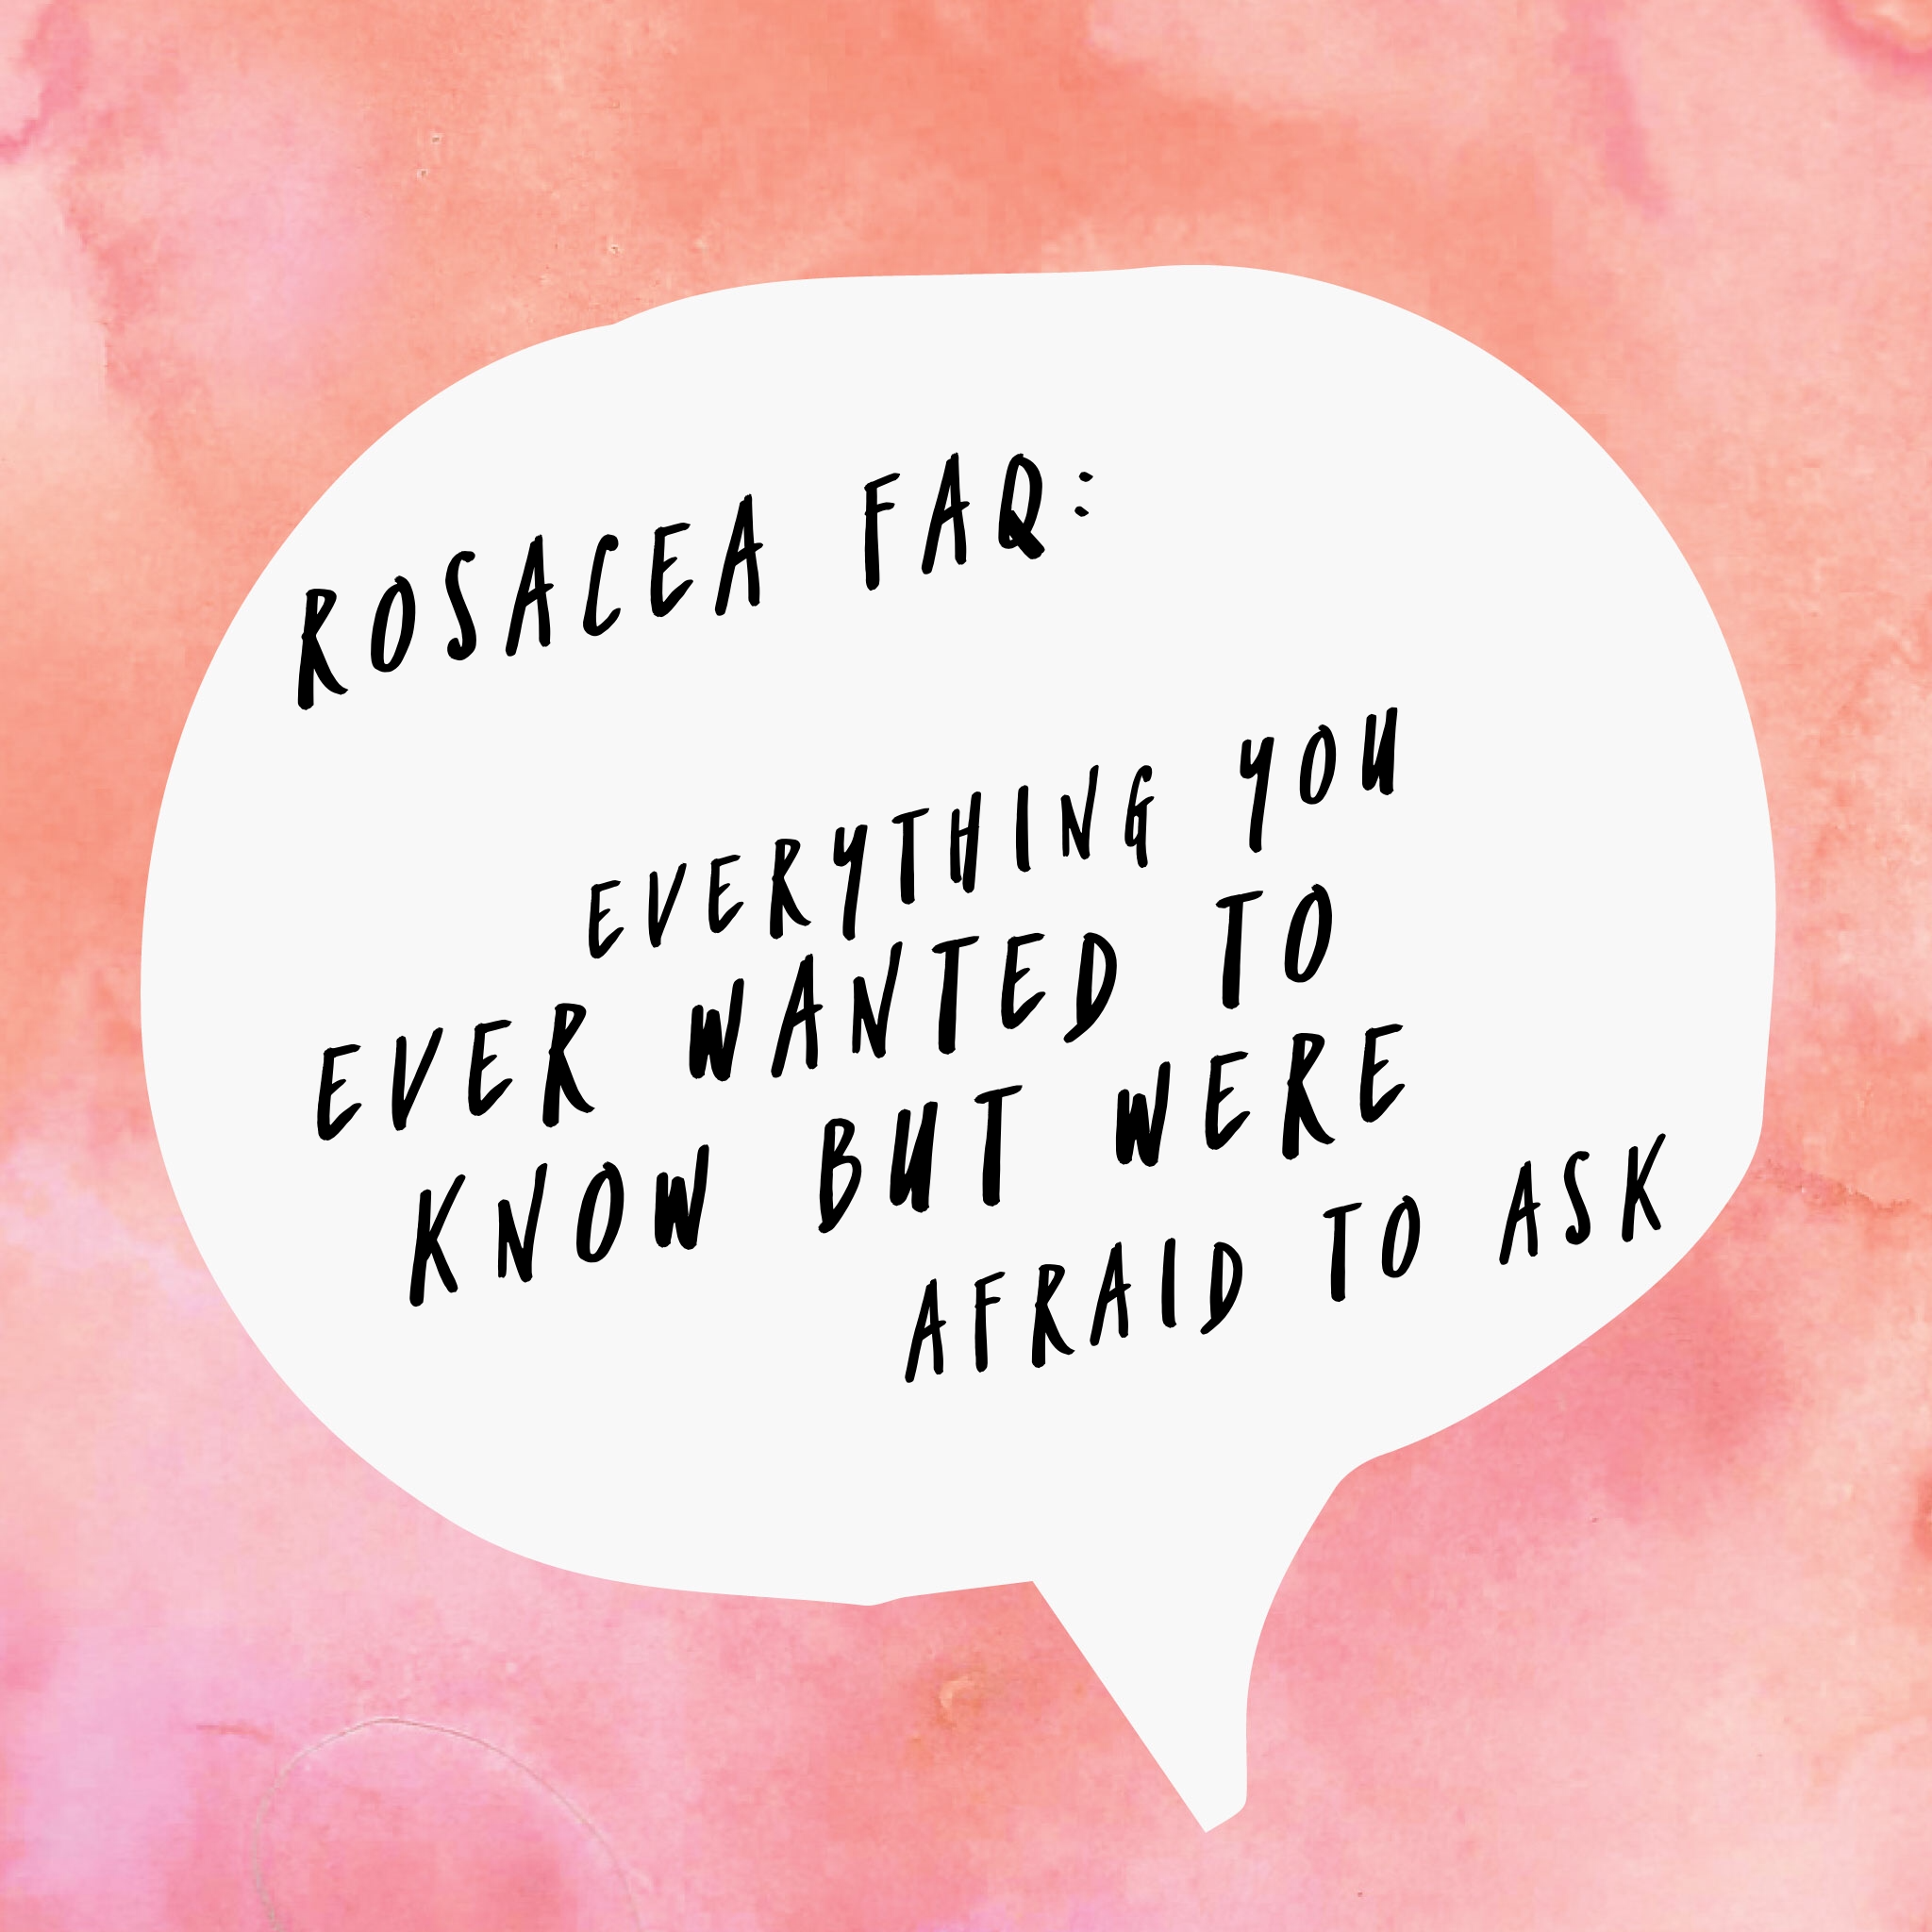 Rosacea FAQs: Everything you've ever wanted to know but were afraid to ask